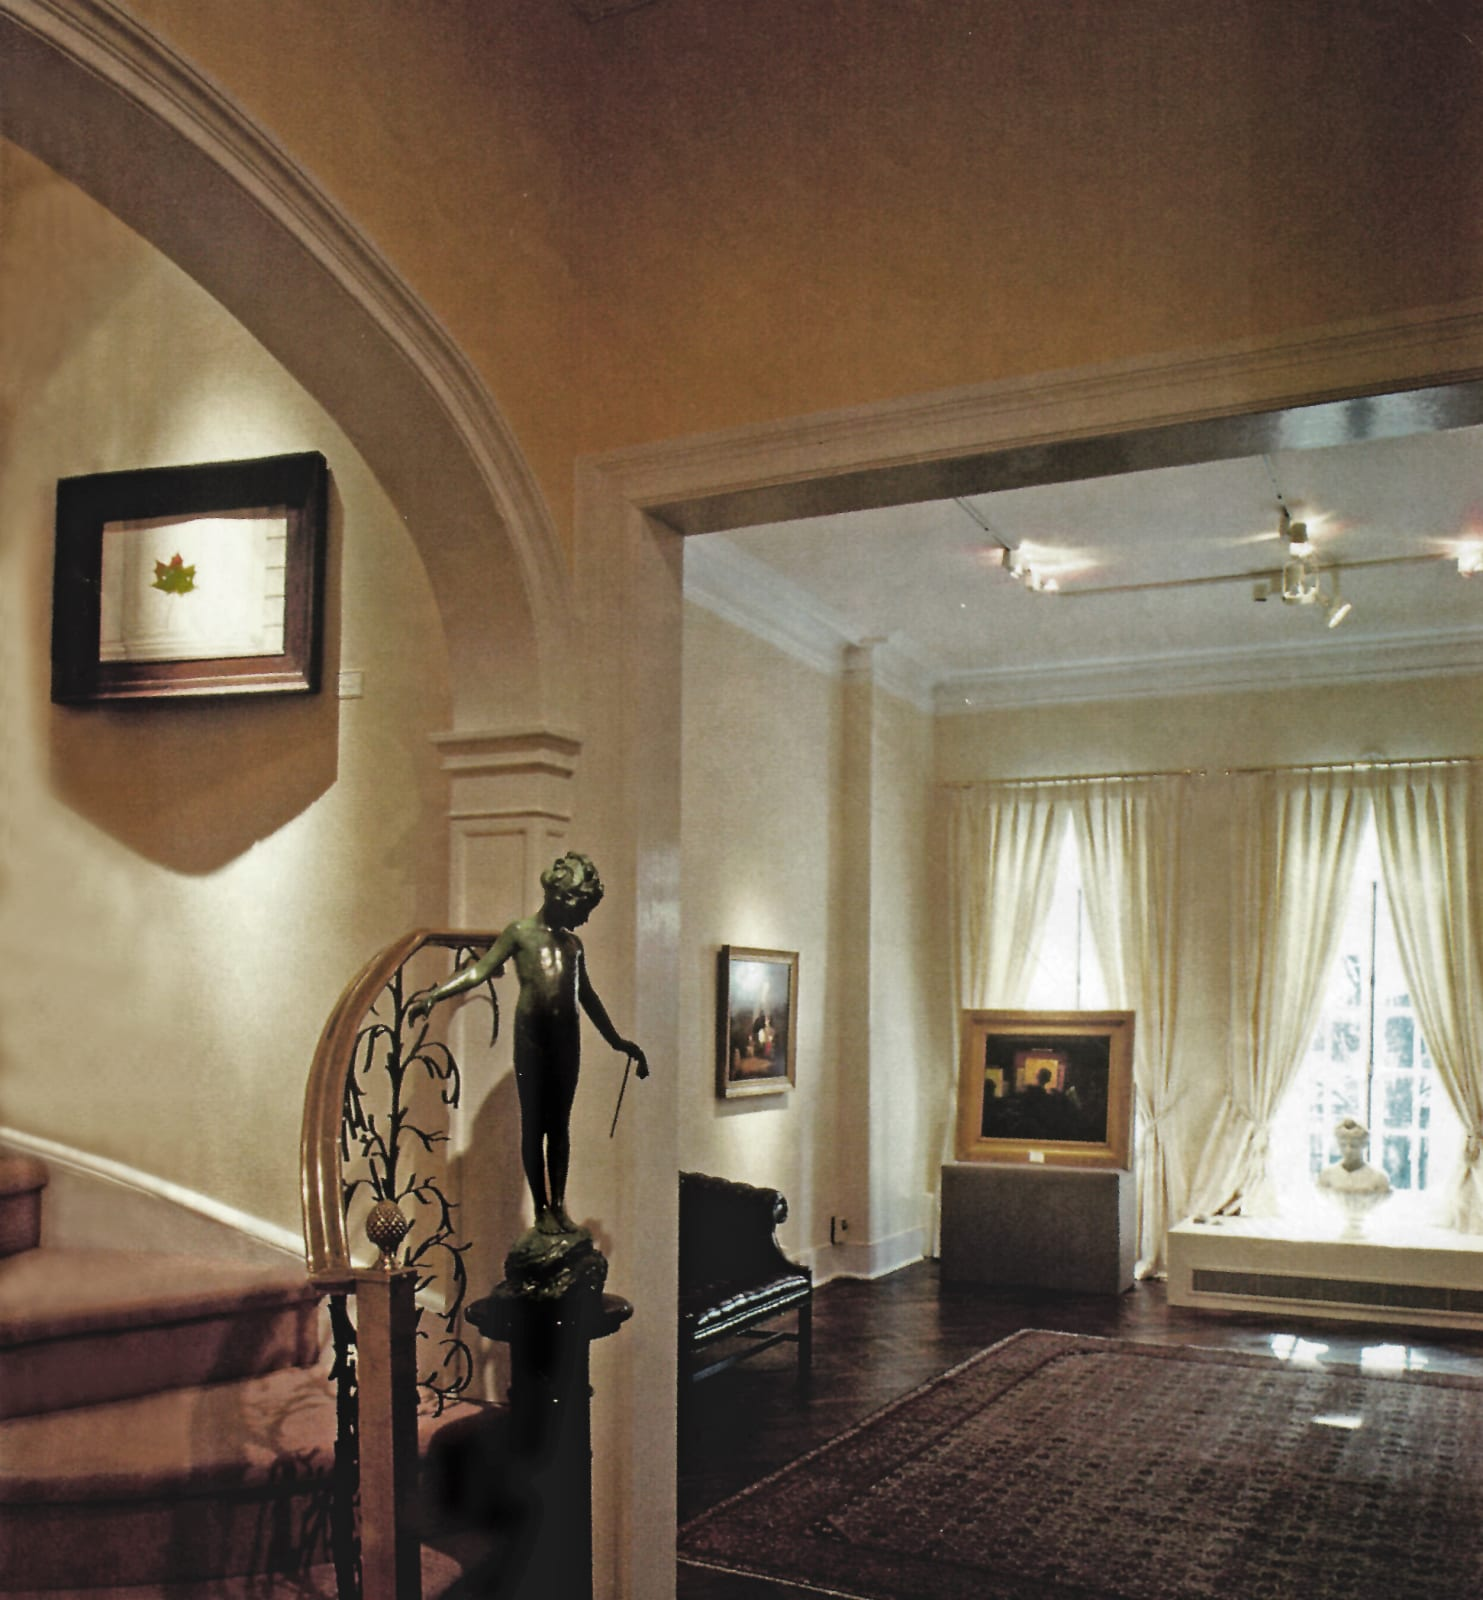 Hollis Taggart Galleries, 48 East 73rd Street, New York, NY (1995)